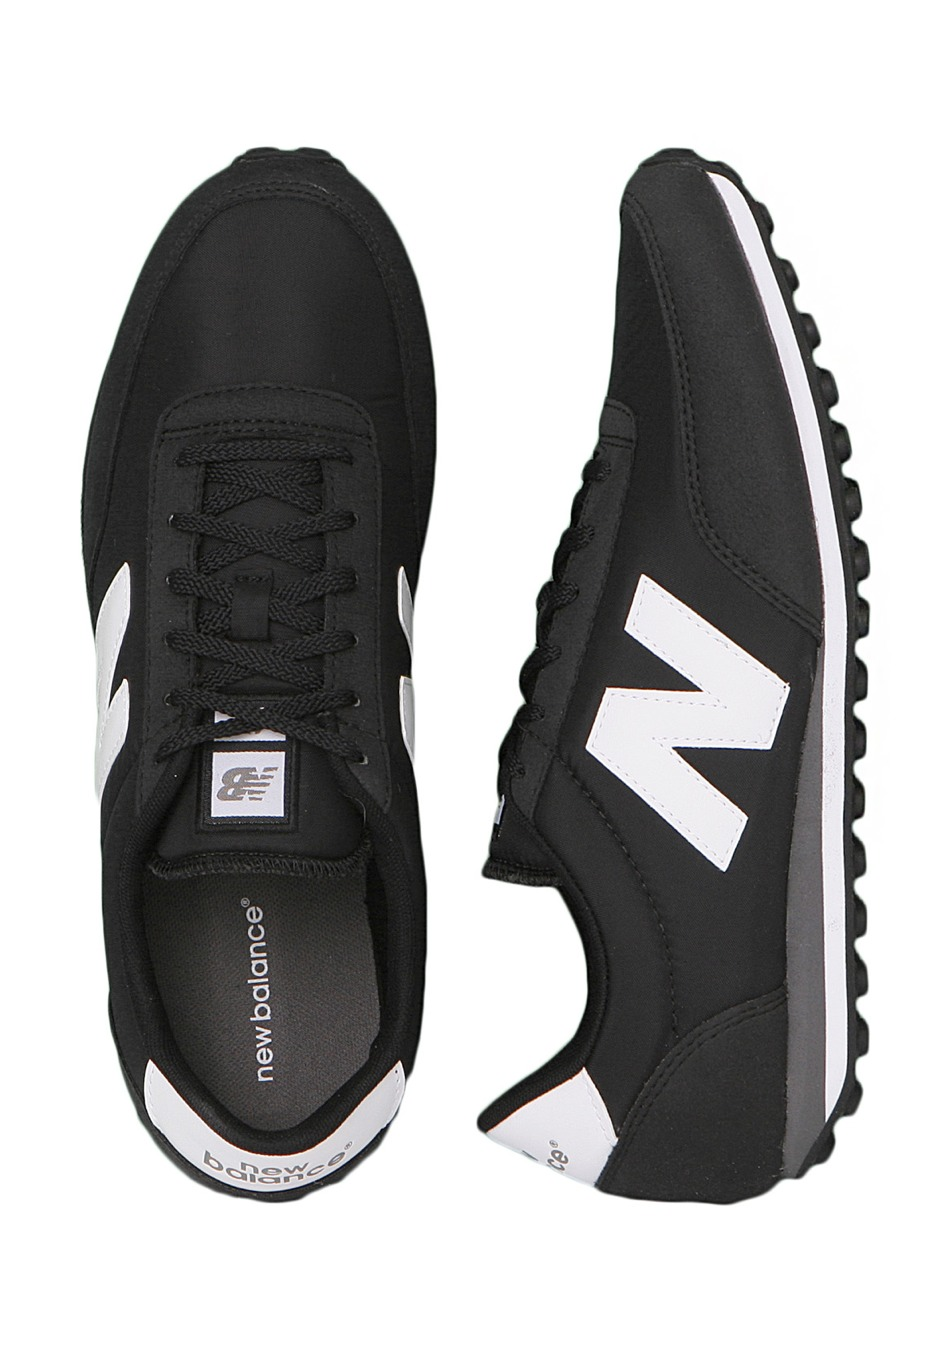 new balance 410 black grey